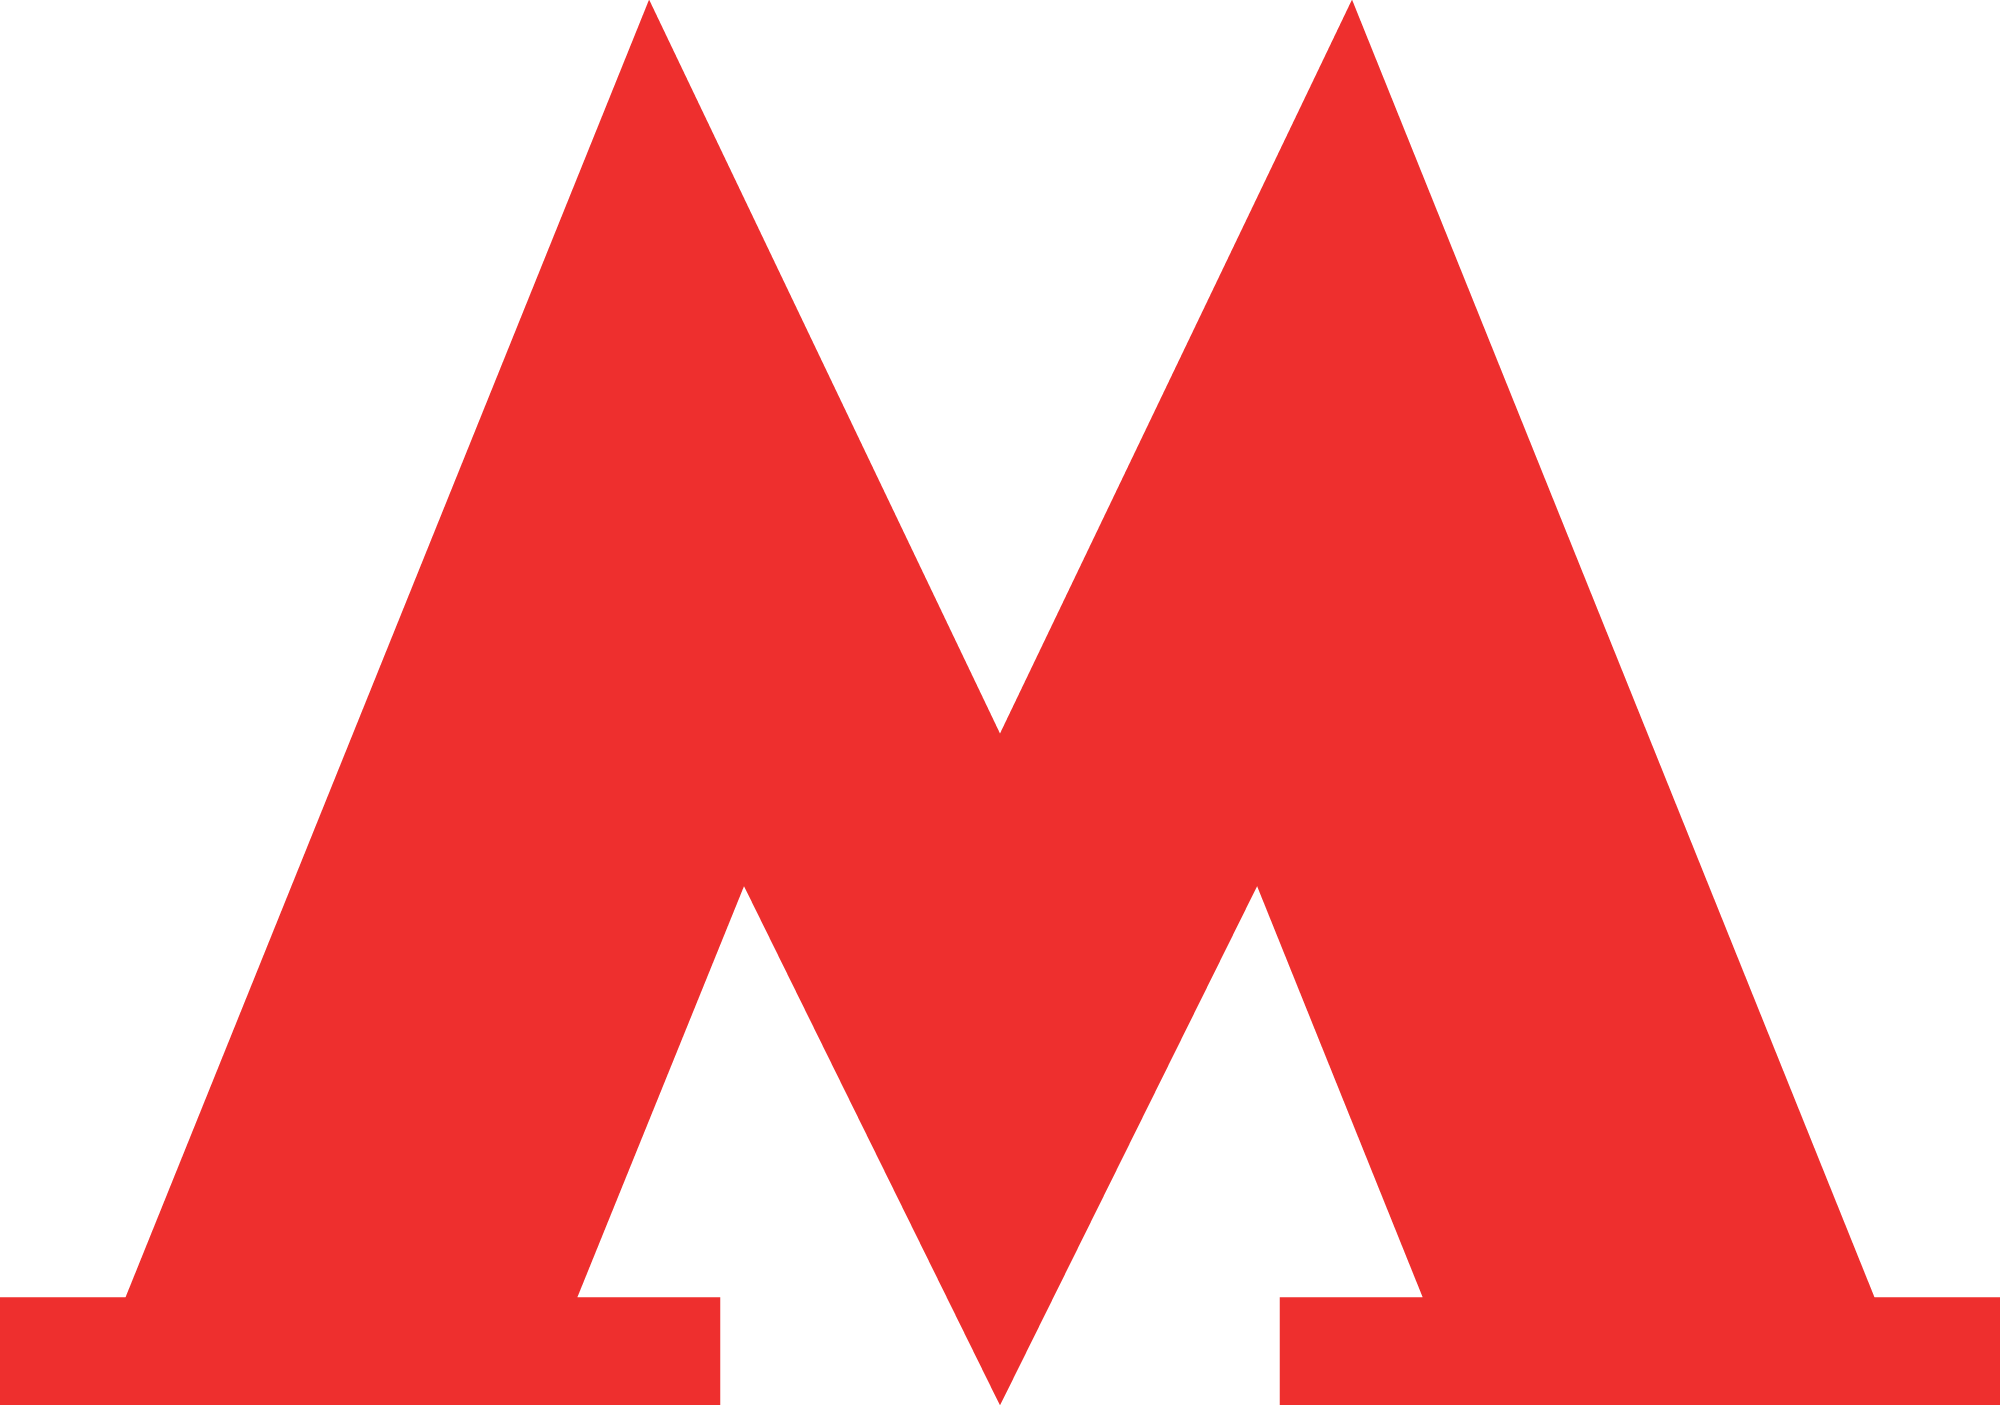 Metro Logo Wallpaper